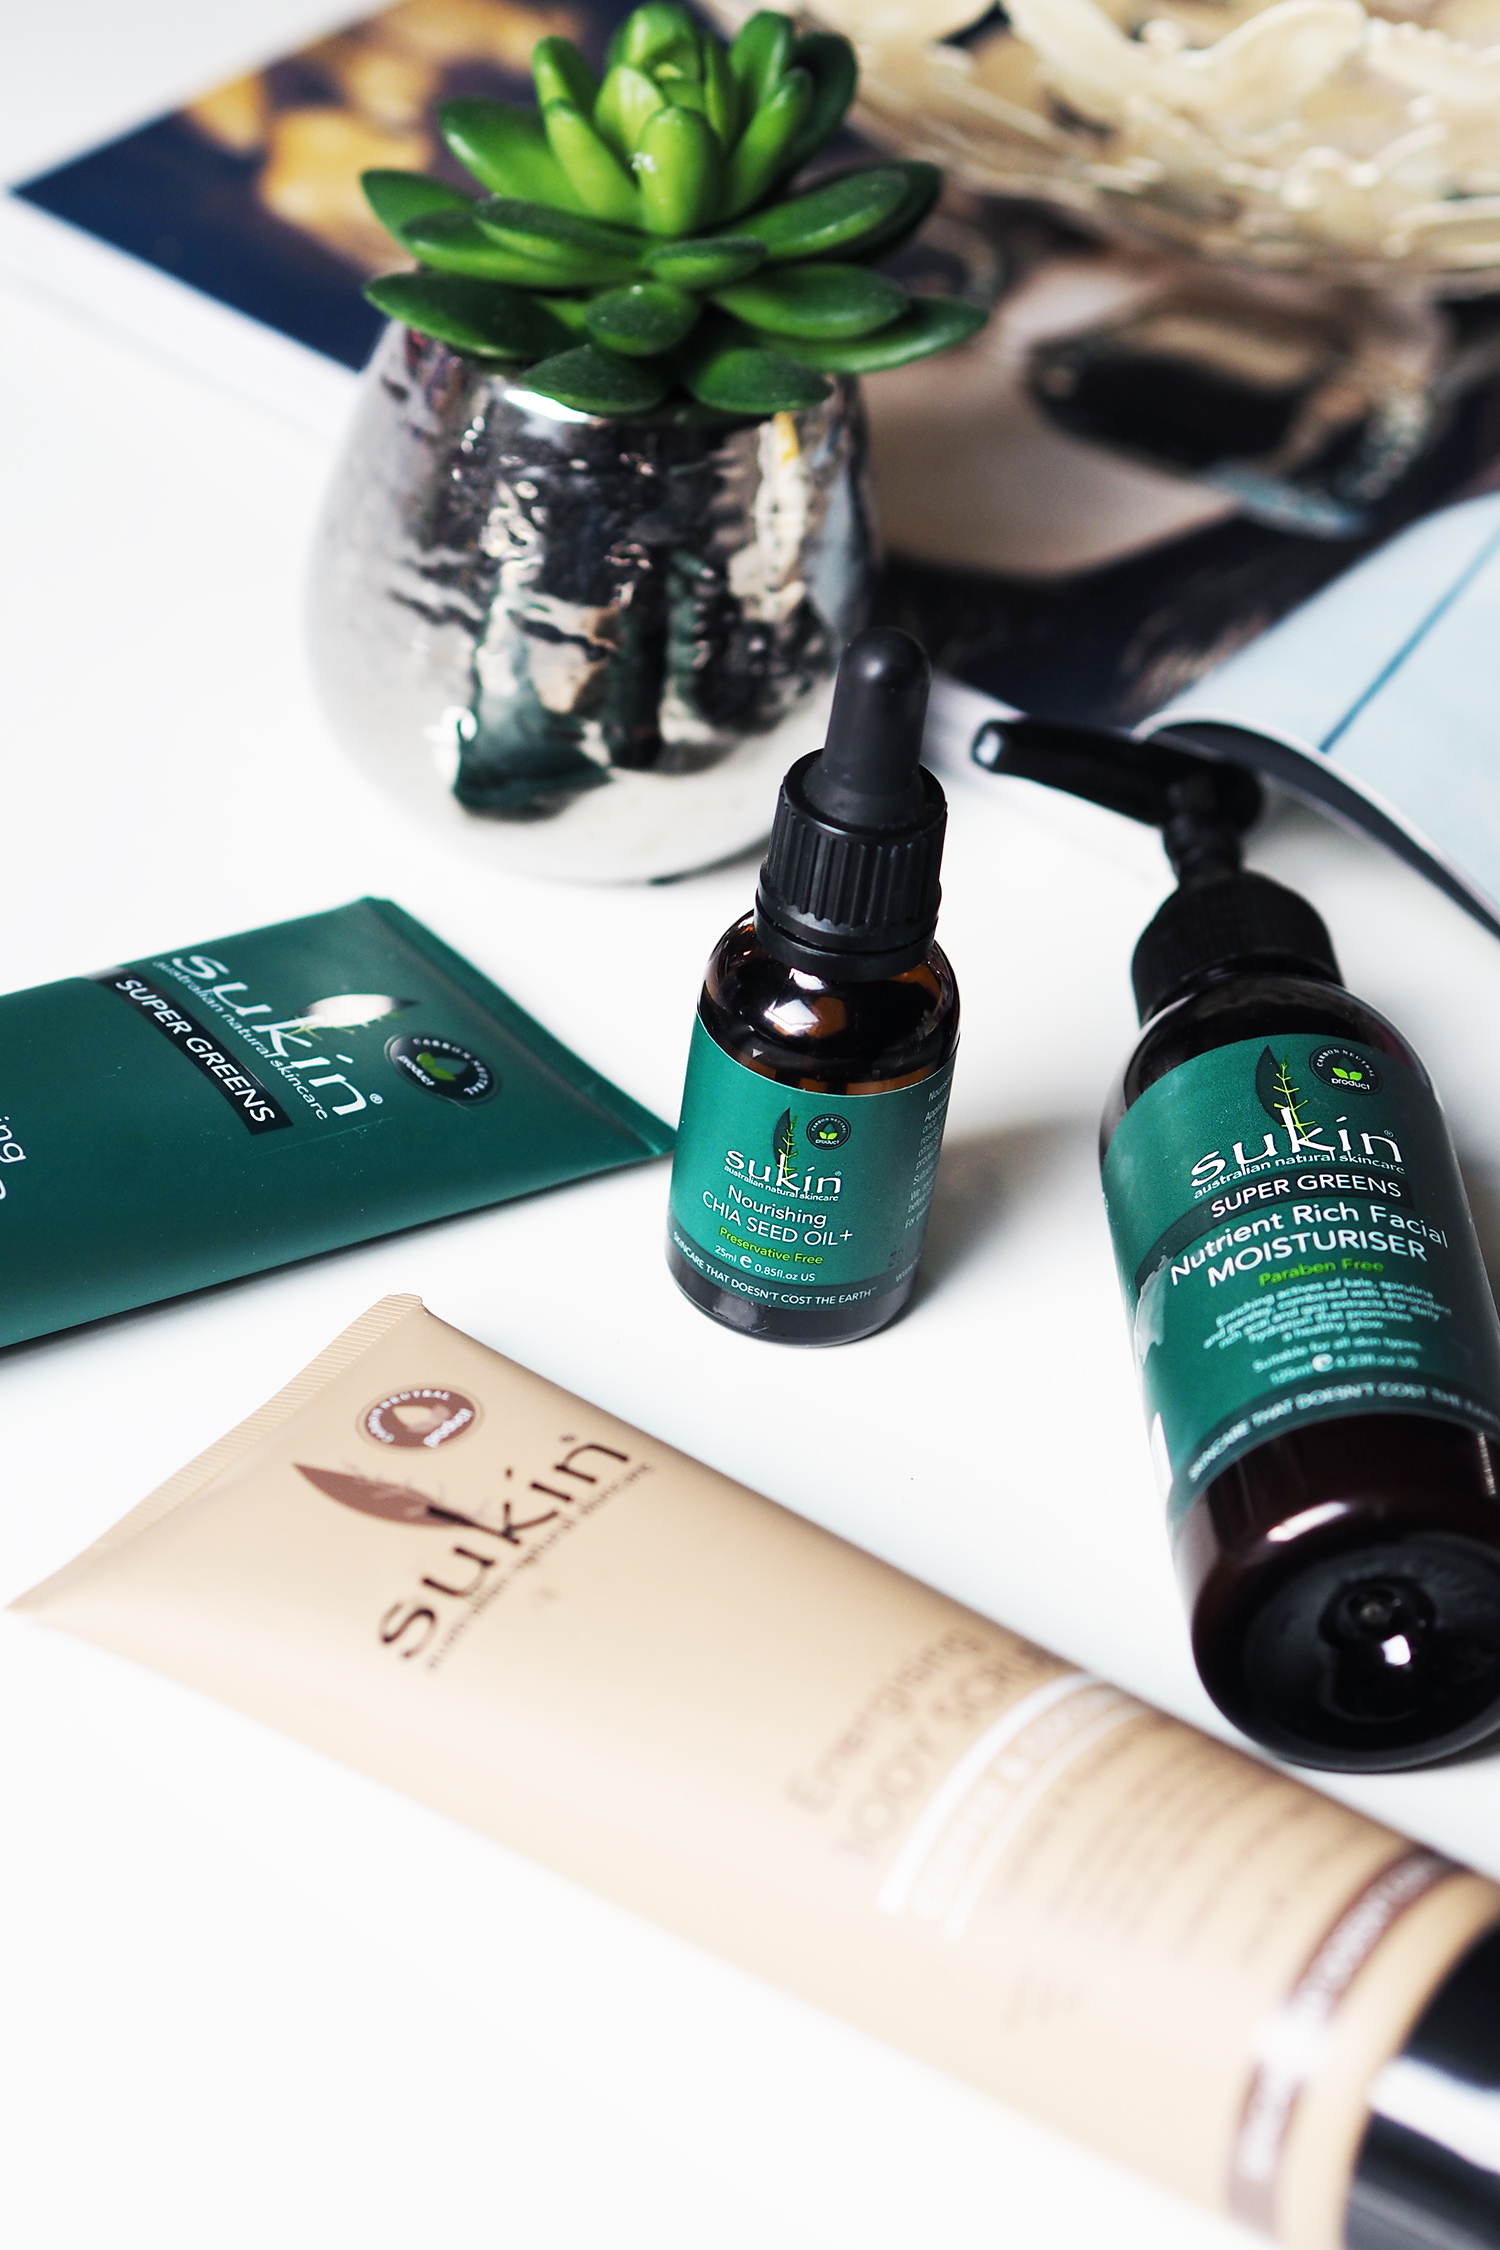 sukin-skincare-super-greens-zoe-newlove-beauty-blogger-review